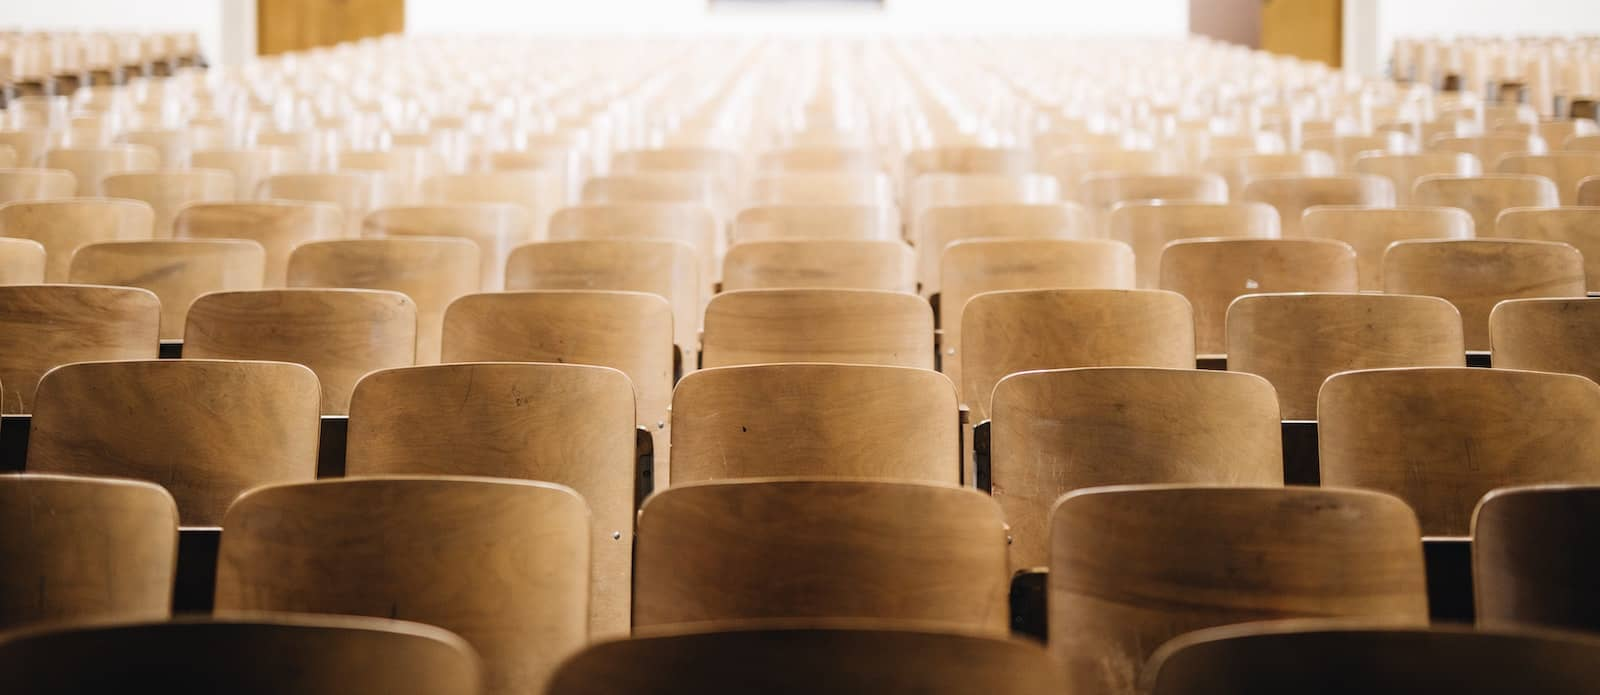 Empty Lecture Hall - Should I take a gap year because of COVID-19?